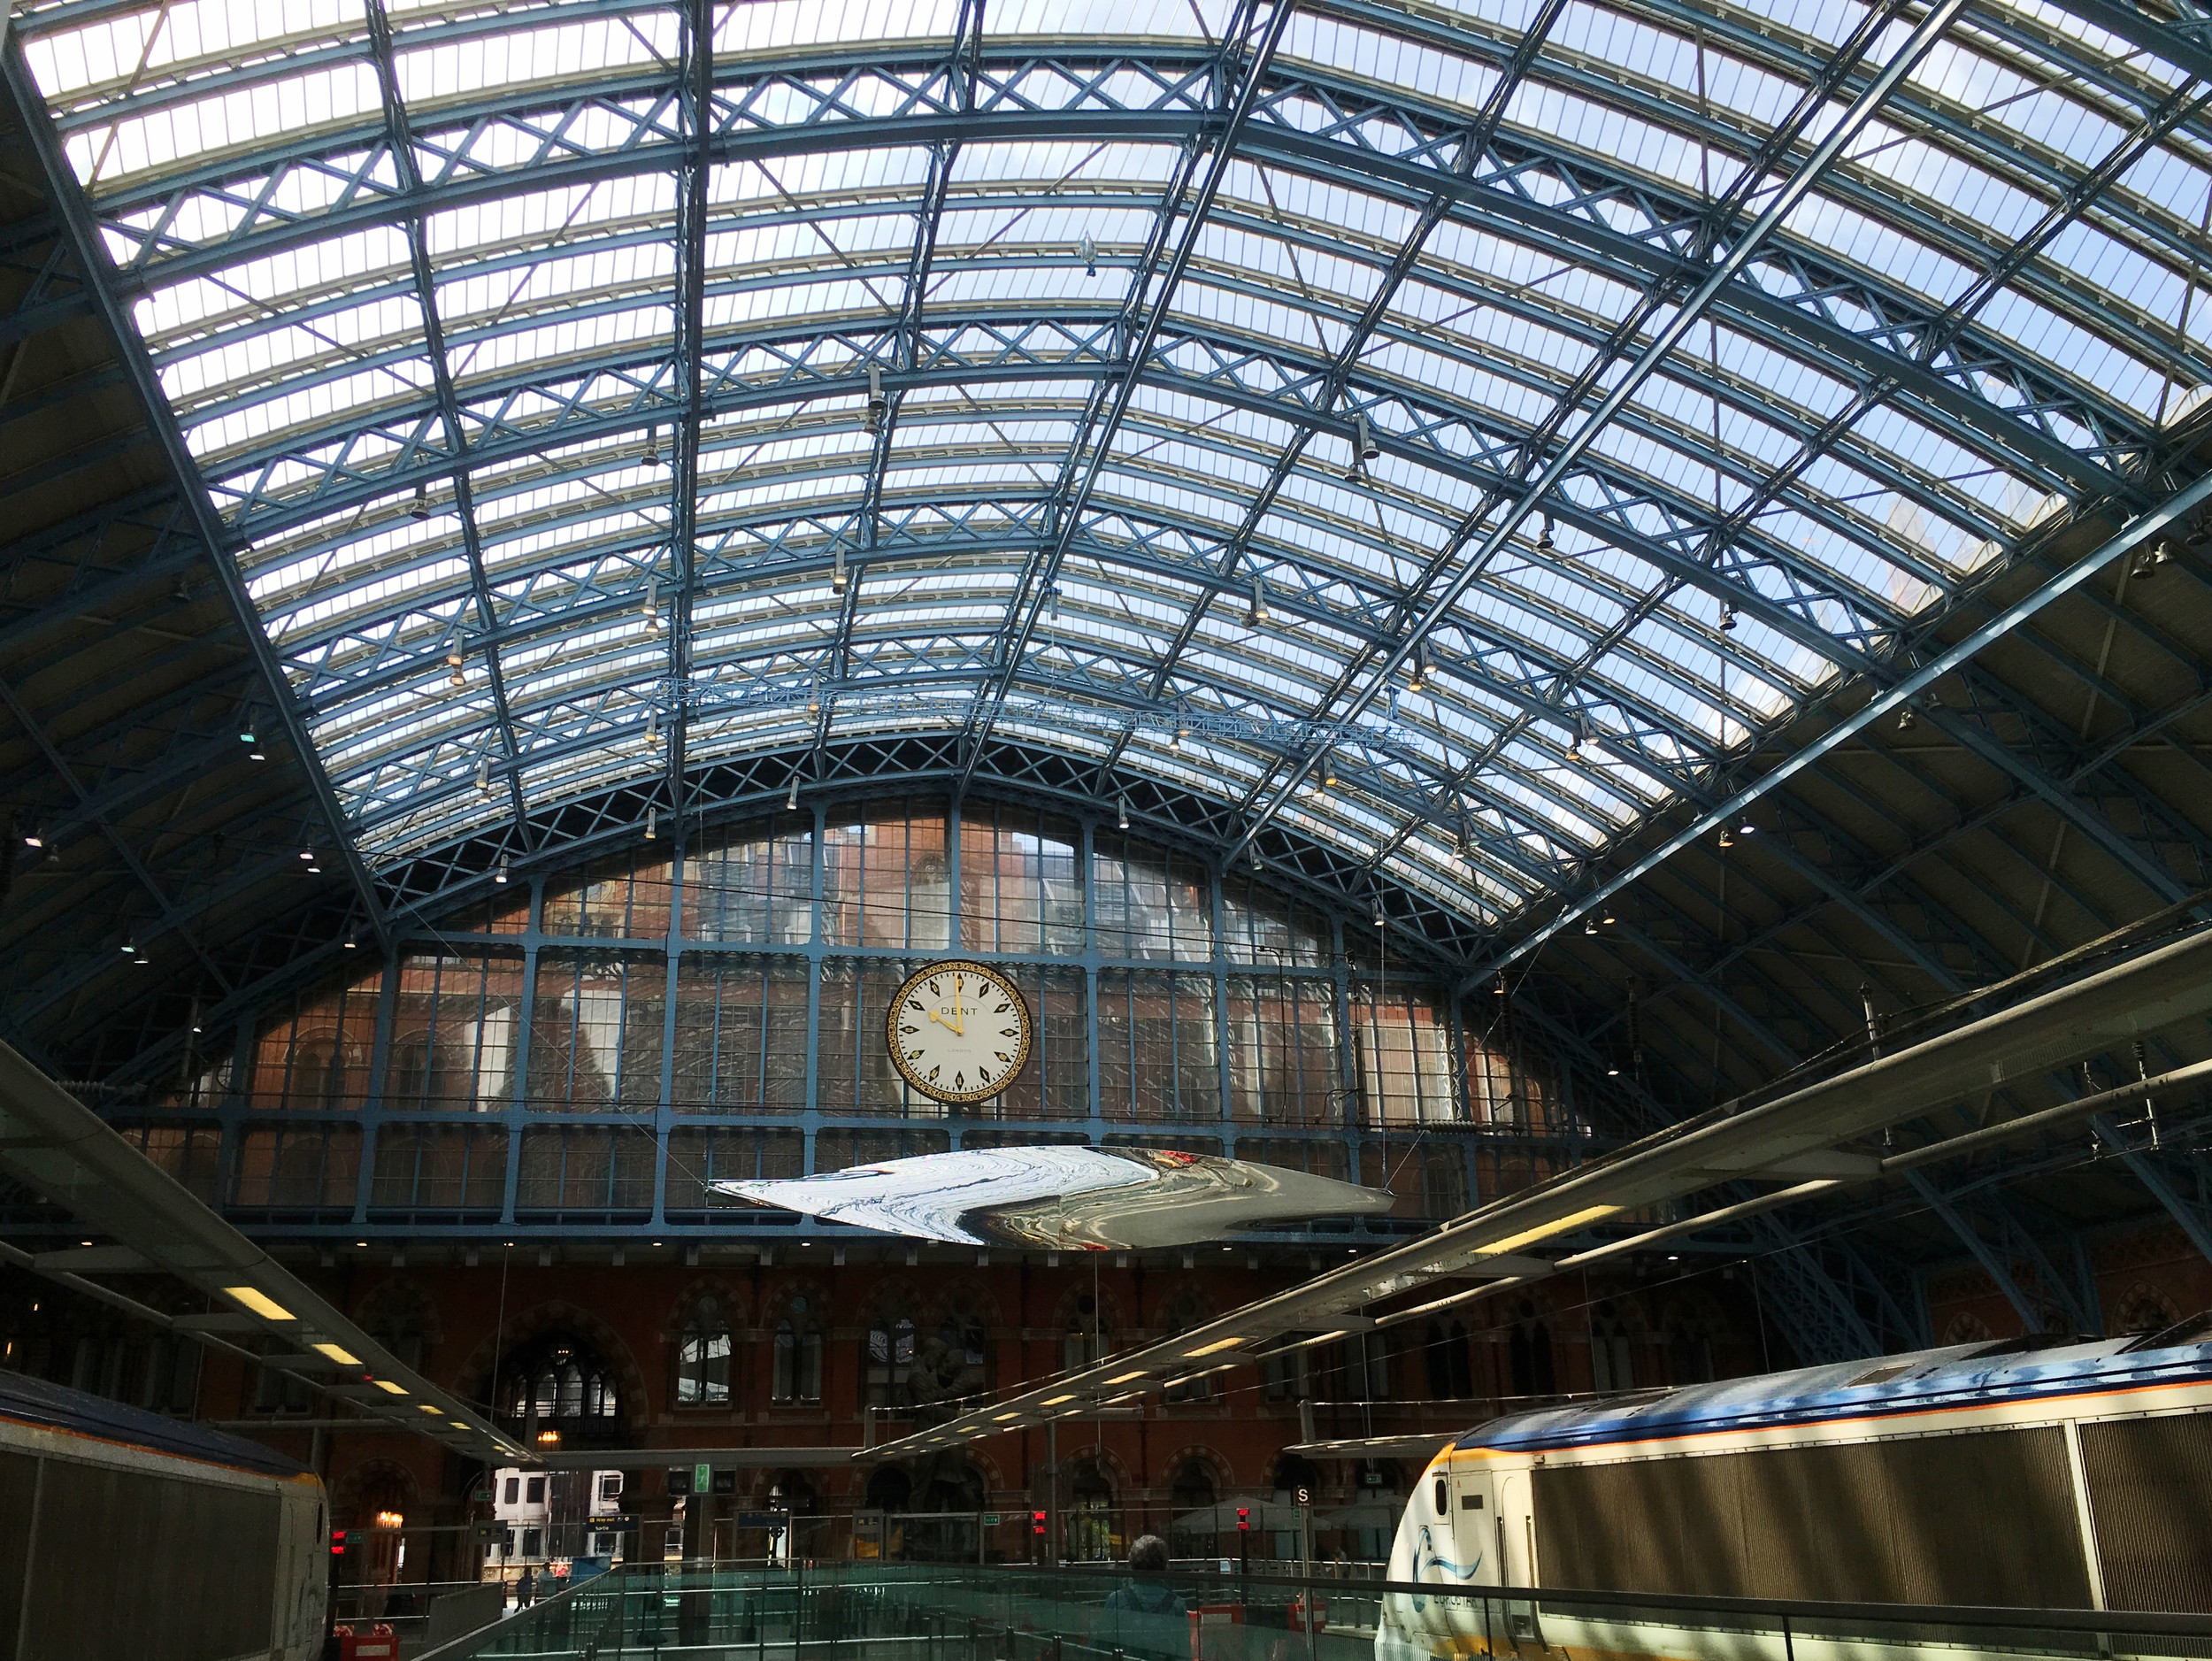 ' Thought of train of Thought ' by Ron Arad at St Pancras  (own photo)